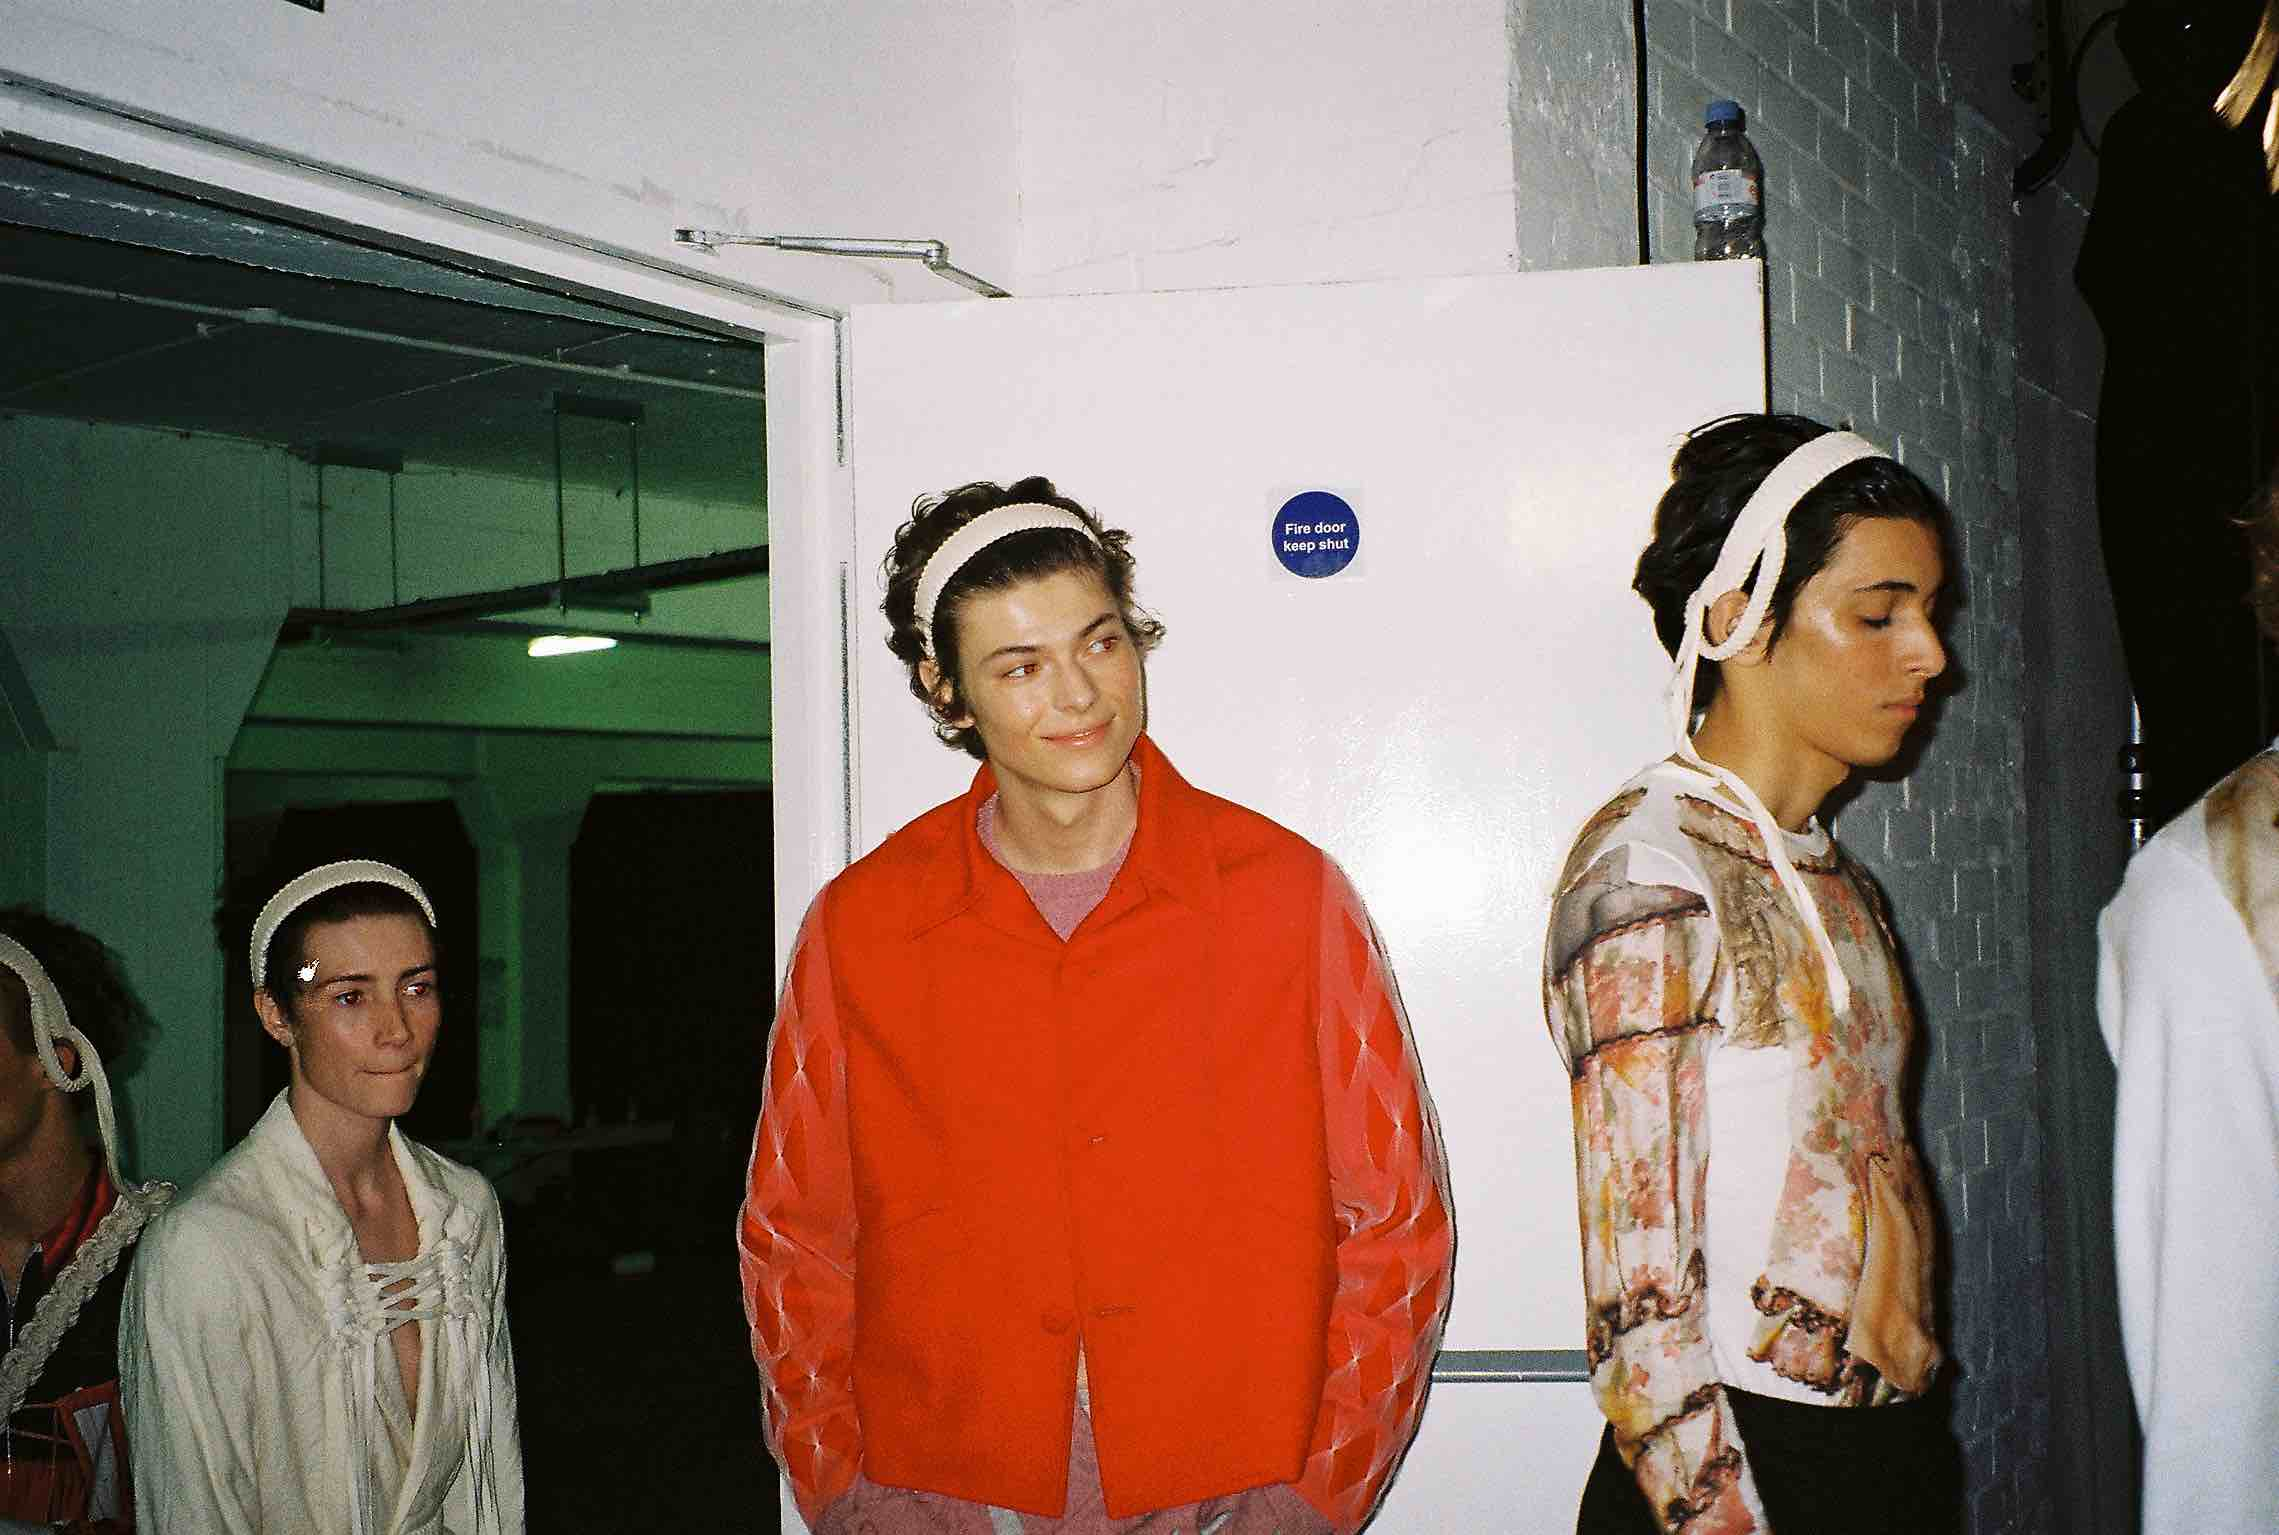 stefan cooke ss20 backstage photos